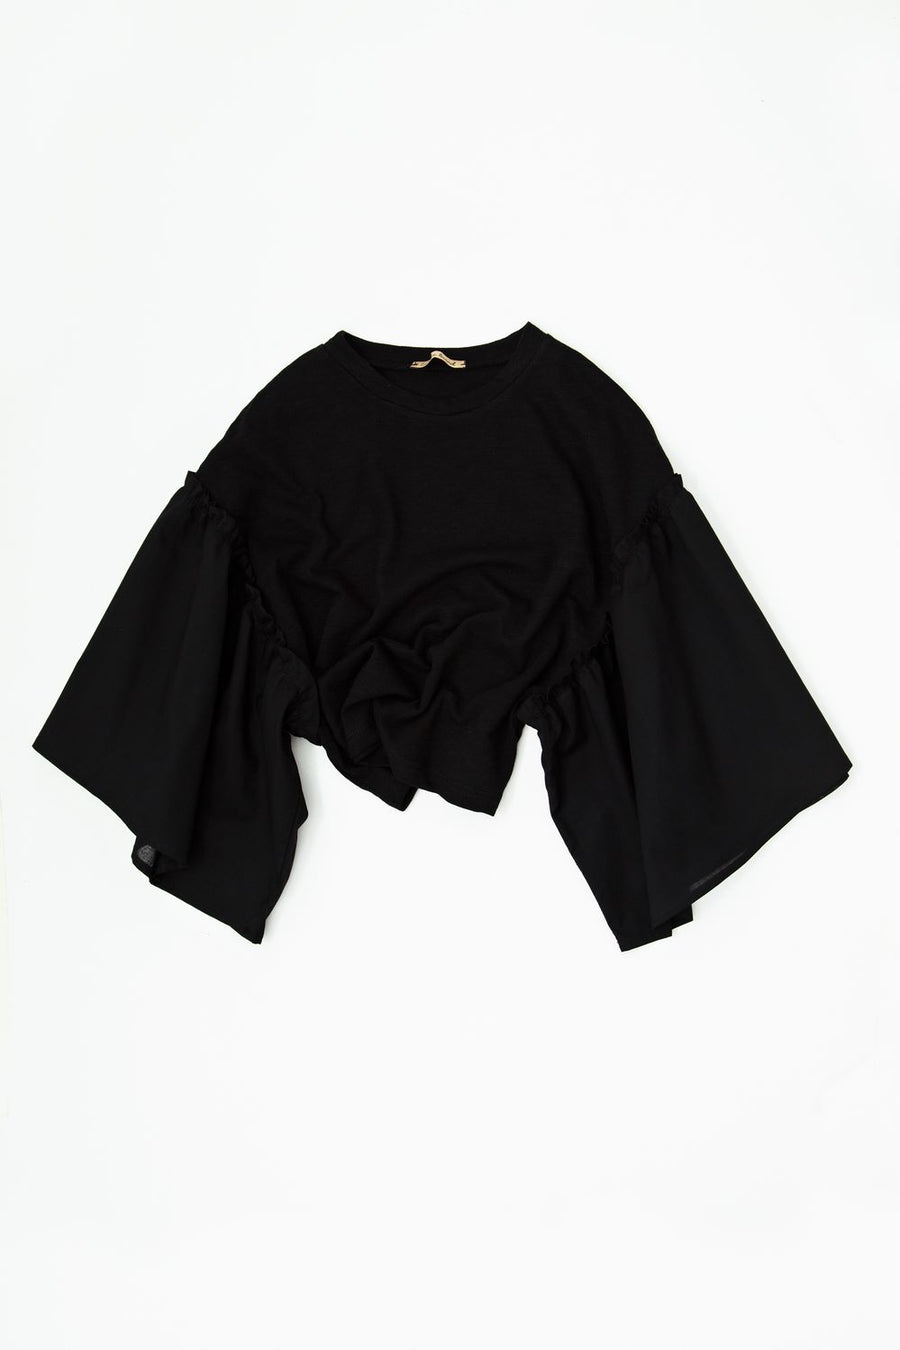 The Square Impresive Sleeves Blouse by LOL the Brand